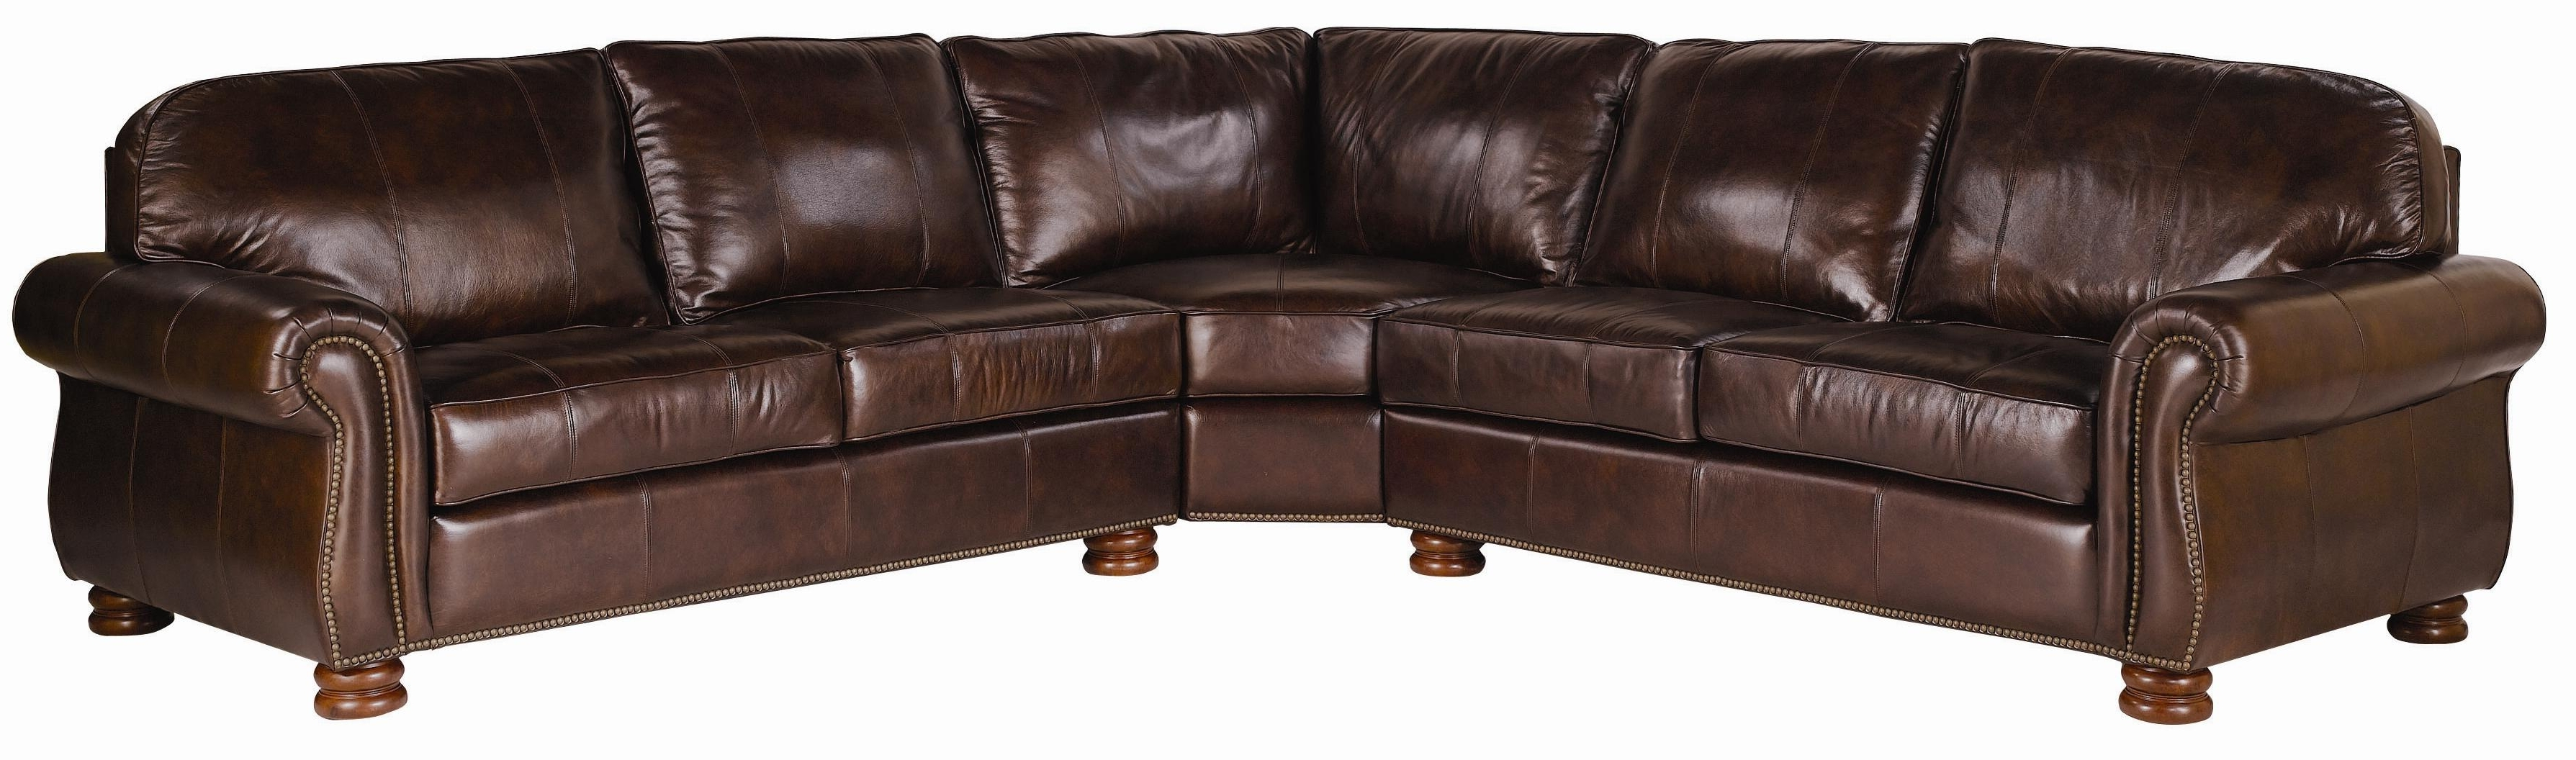 Most Recent Thomasville® Leather Choices – Benjamin Leather Select 3 Piece Inside Thomasville Sectional Sofas (View 4 of 15)